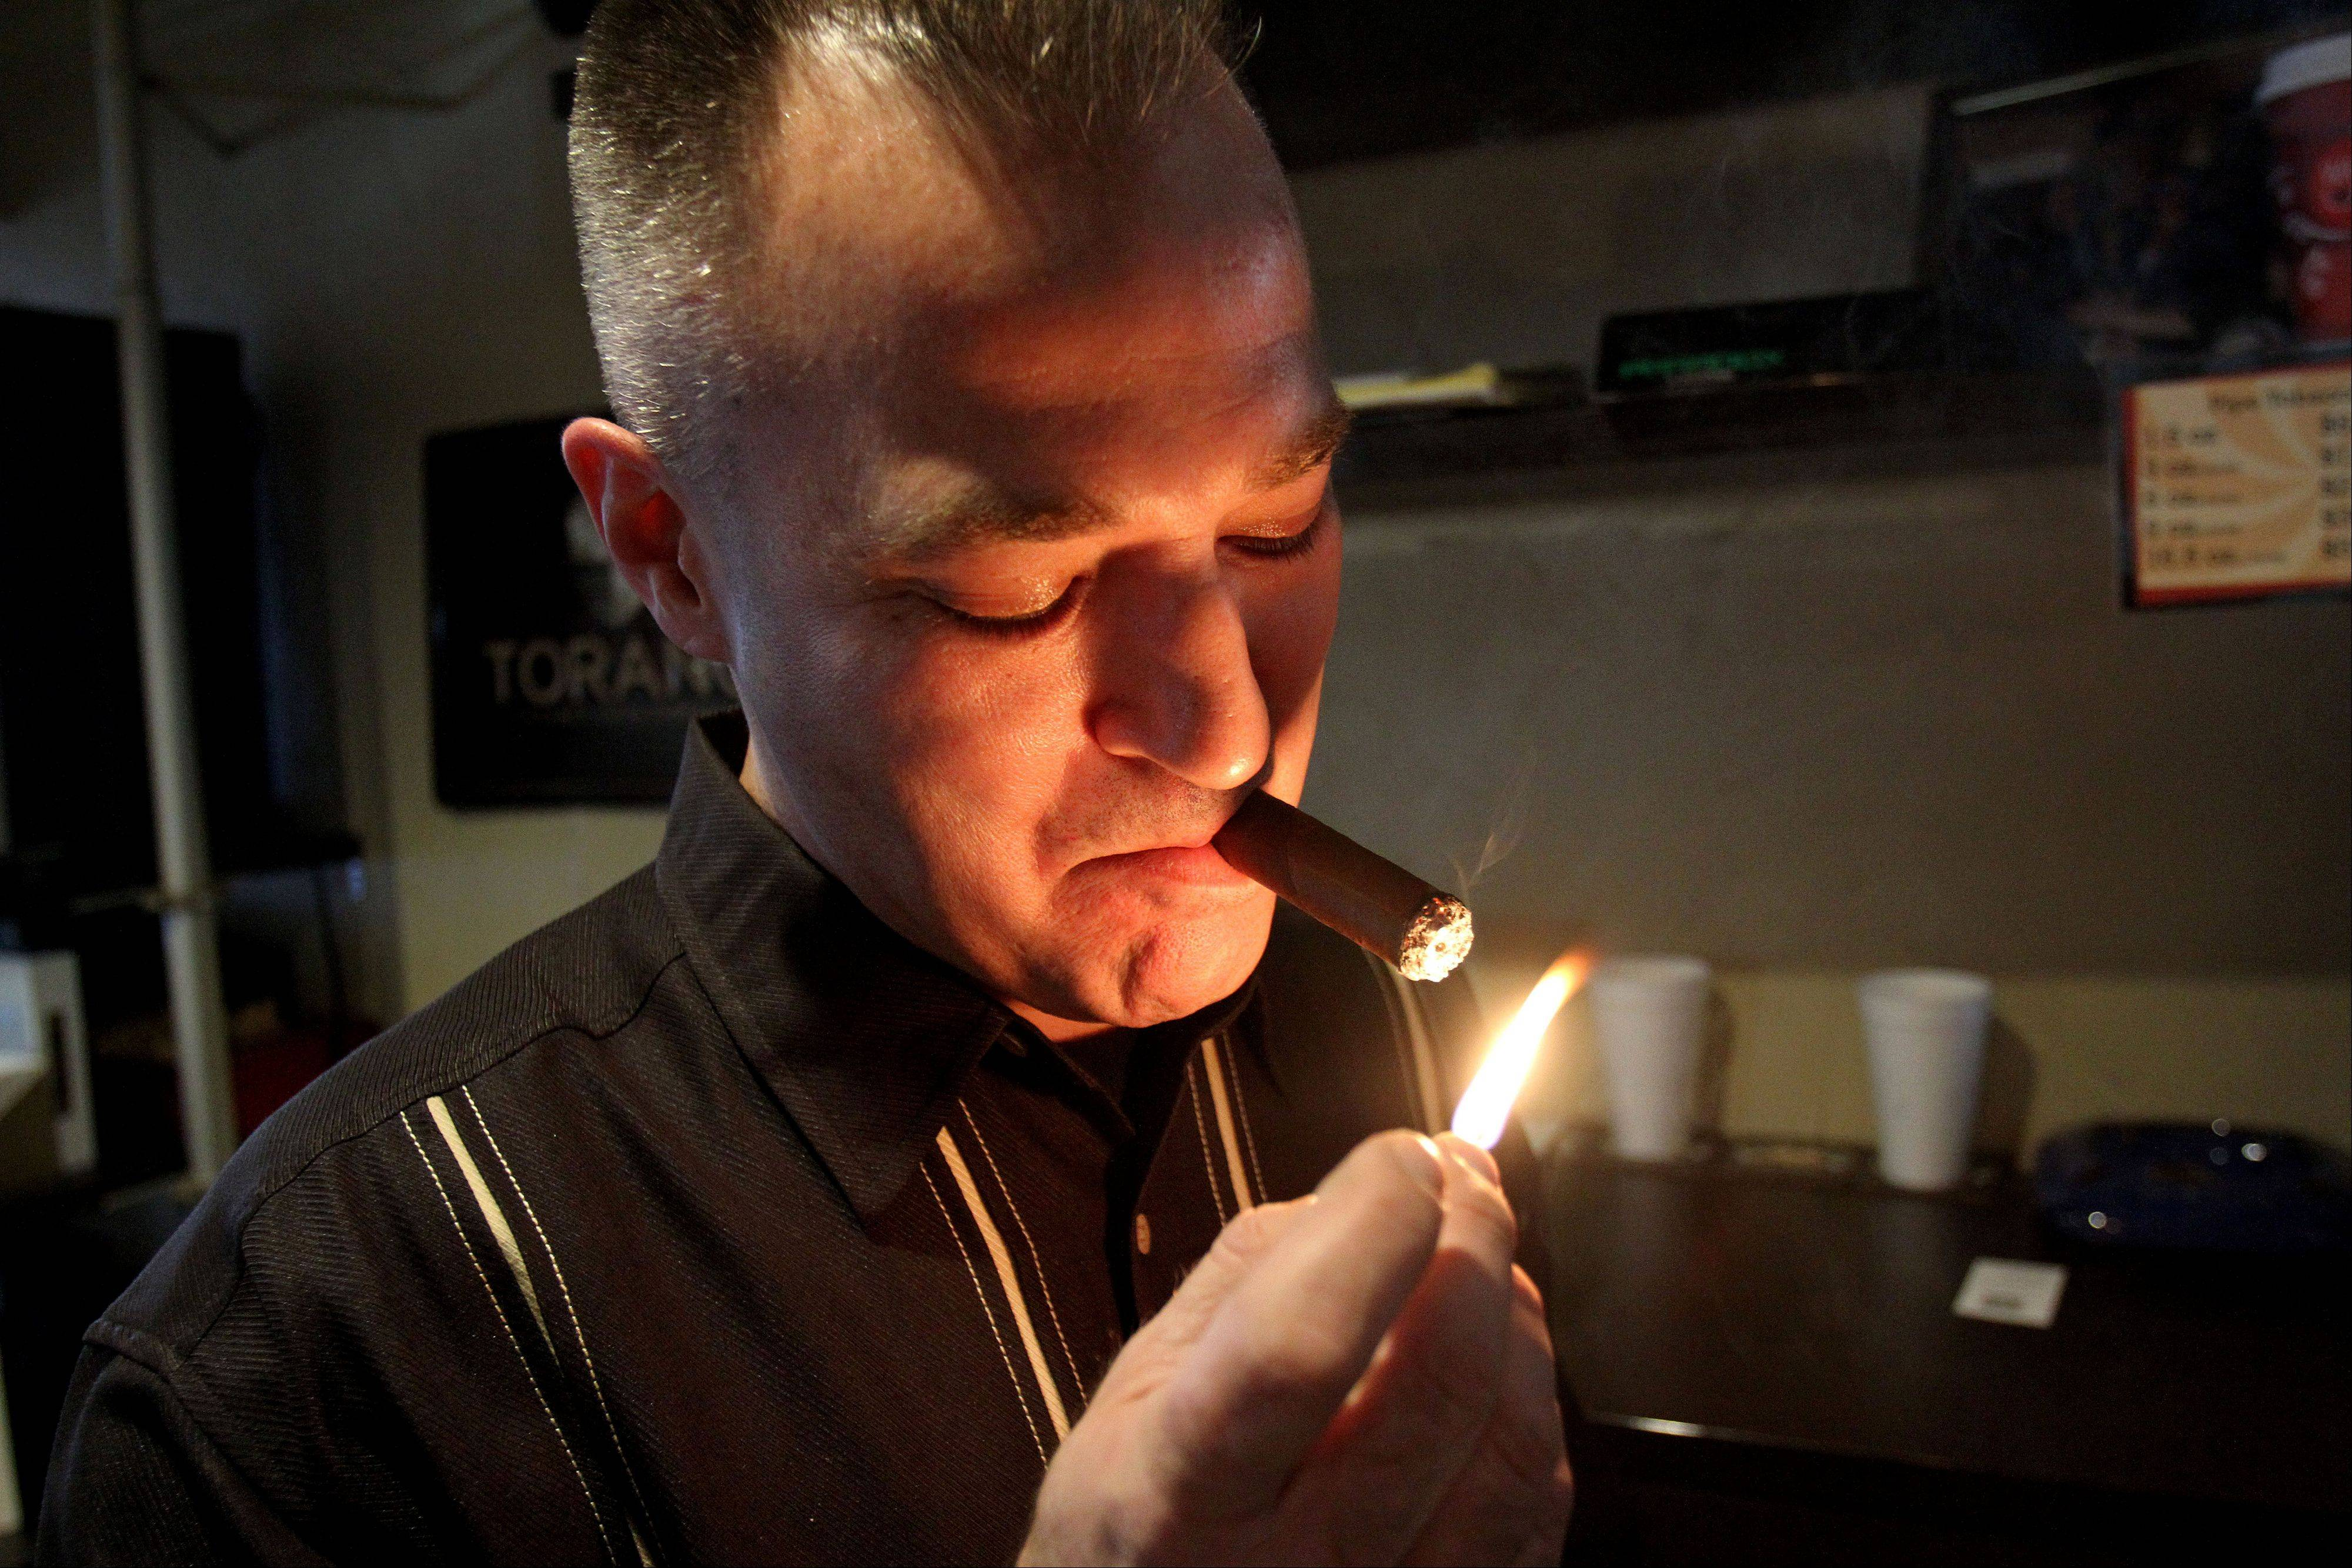 Ken Neumann, owner of Cigars and More in Libertyville lights a cigar at his shop. Neumann also is the president of the board of directors for the Lake County Haven, a women's shelter in Libertyville.